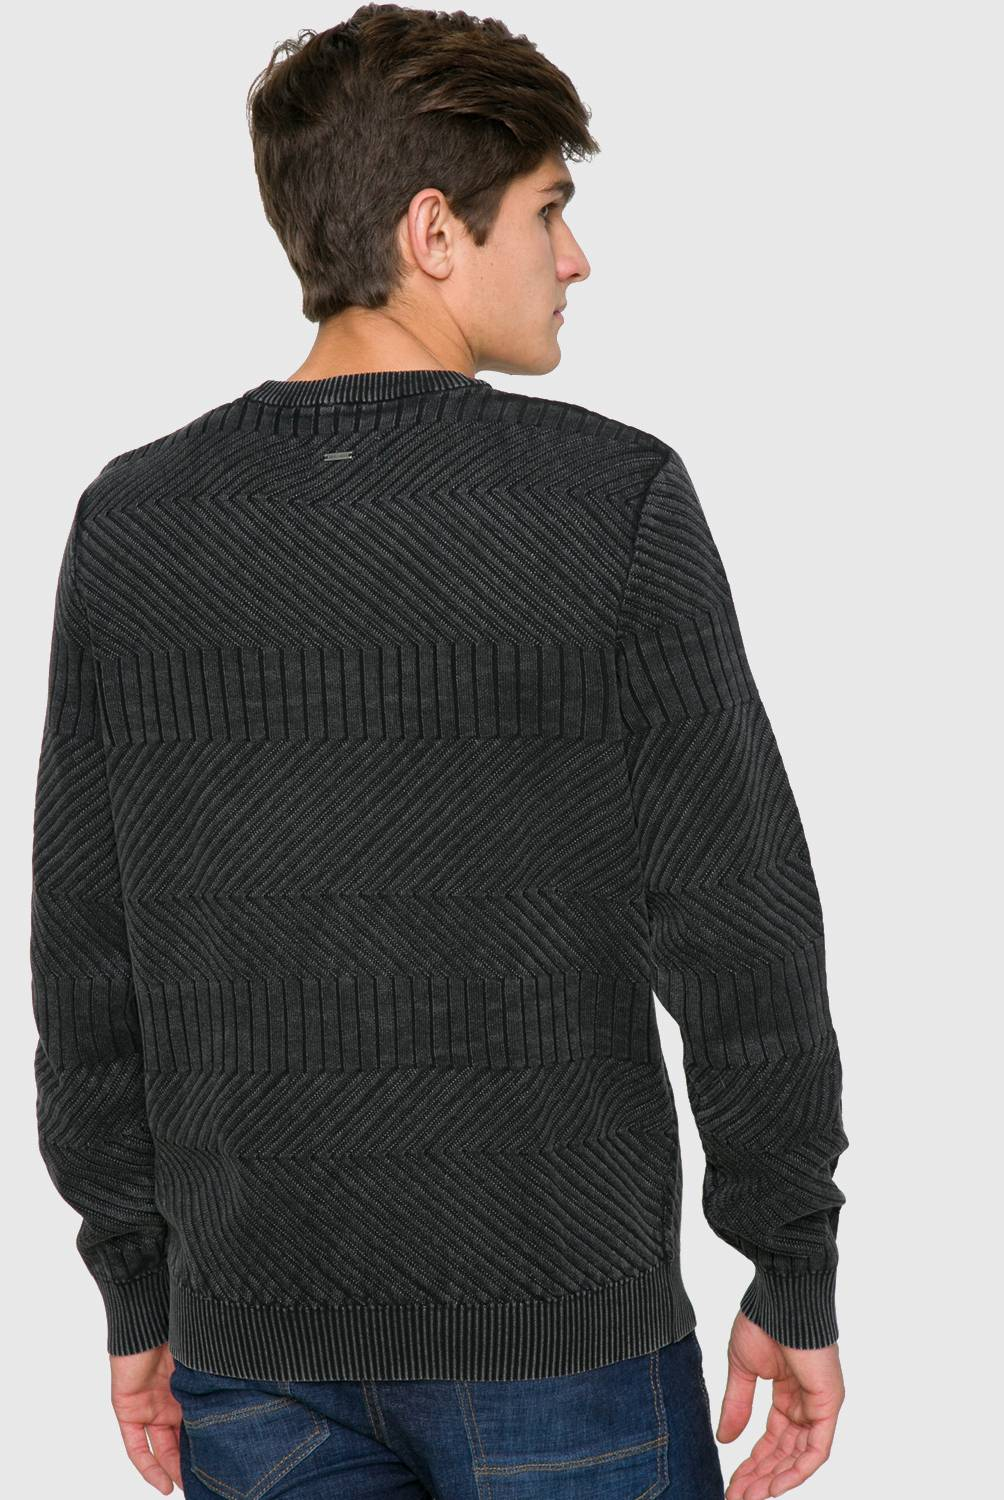 Americanino - Sweater West